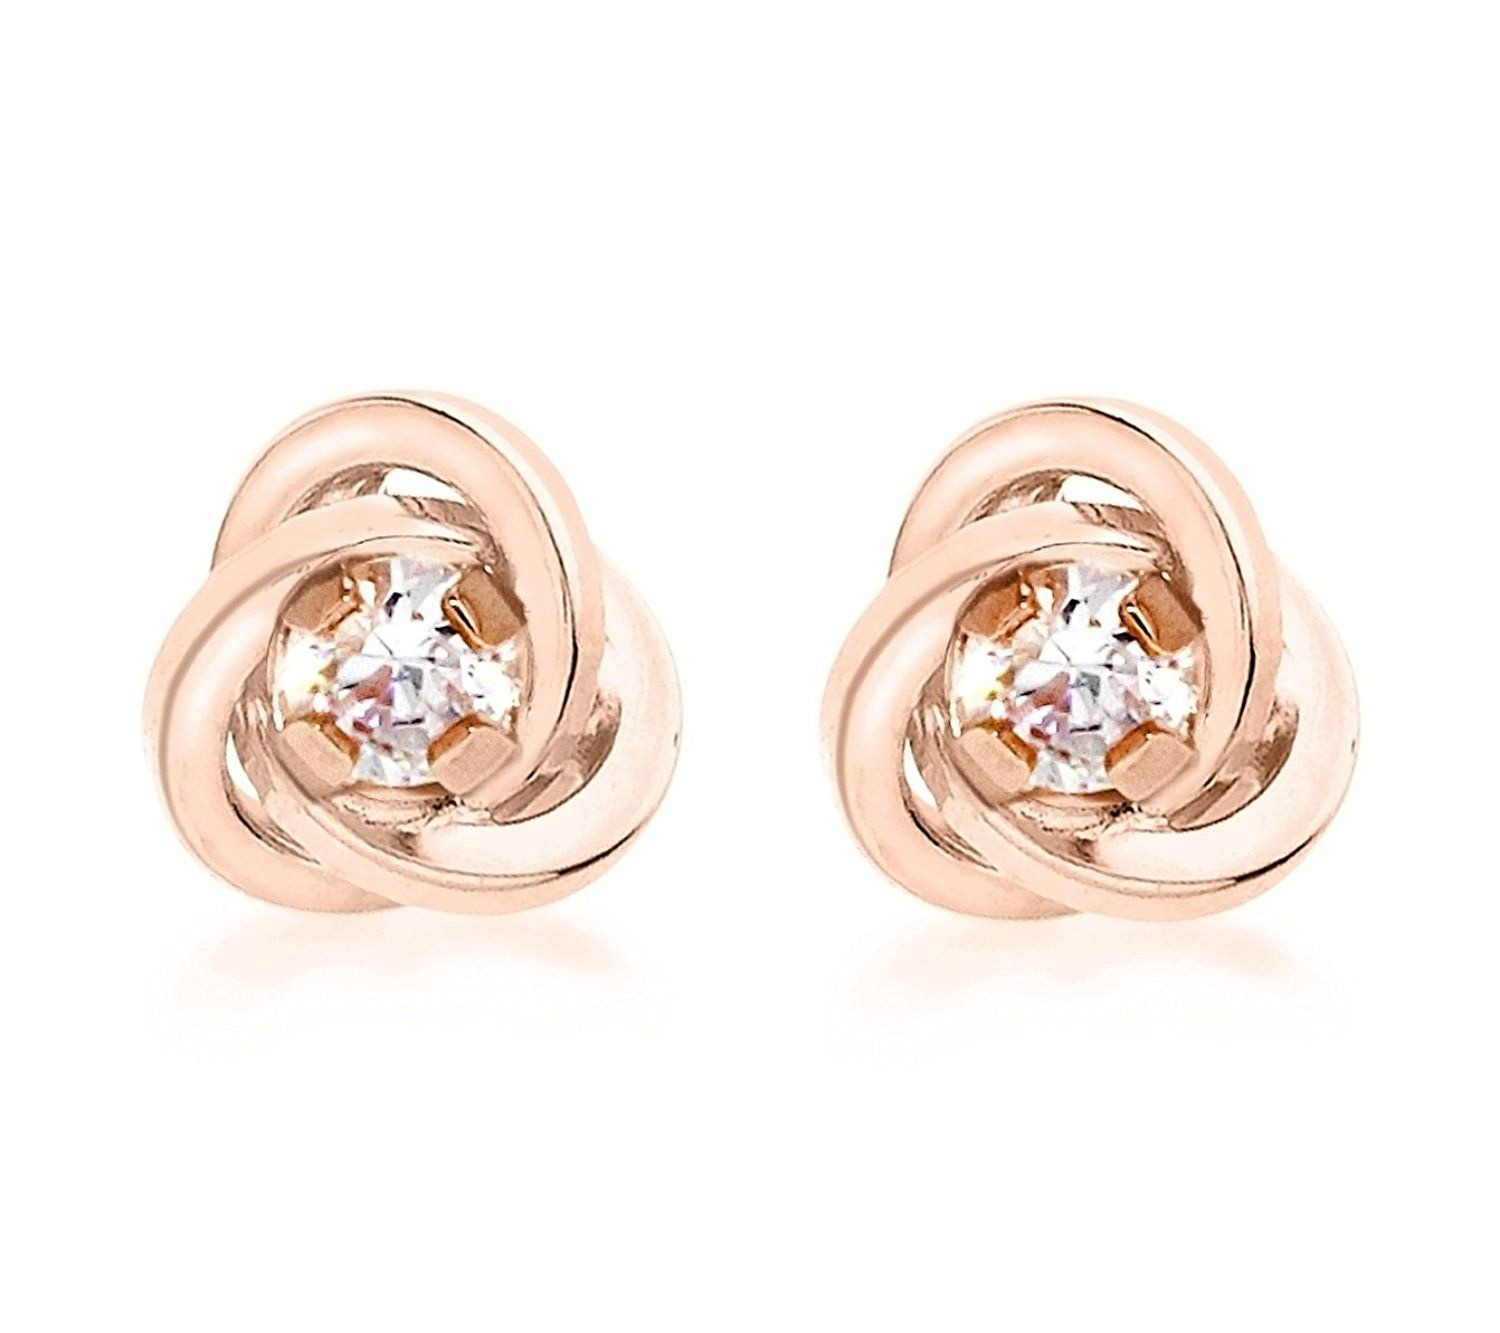 Carissima Gold Women's 9 ct Rose Gold Cubic Zirconia Knot Stud Earrings LUnMTd9Y